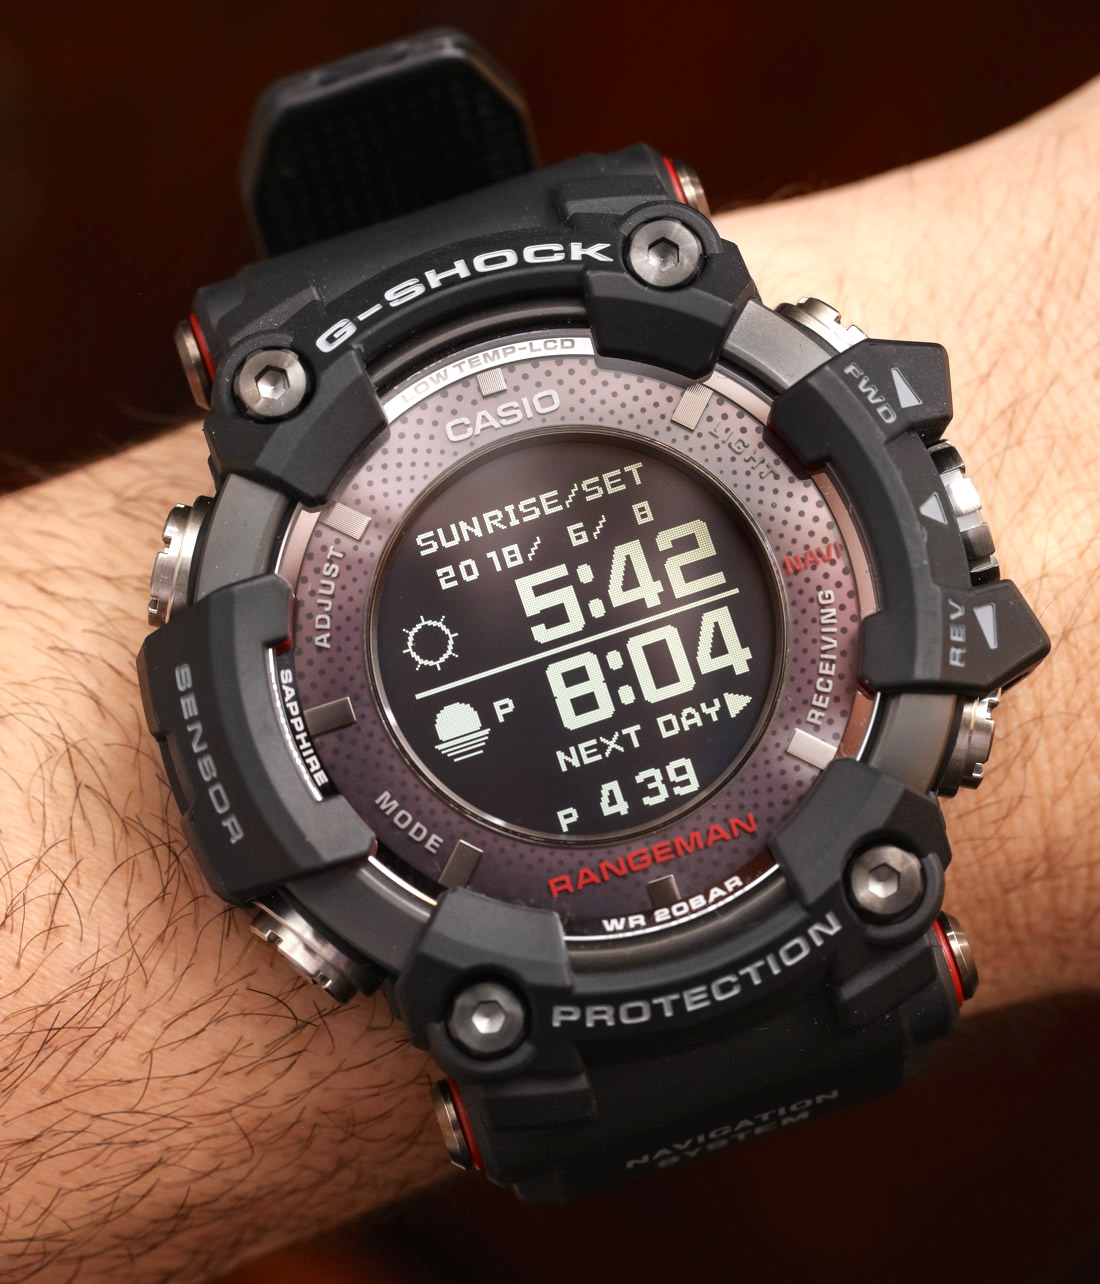 casio g shock rangeman gprb1000 1 gps watch review. Black Bedroom Furniture Sets. Home Design Ideas